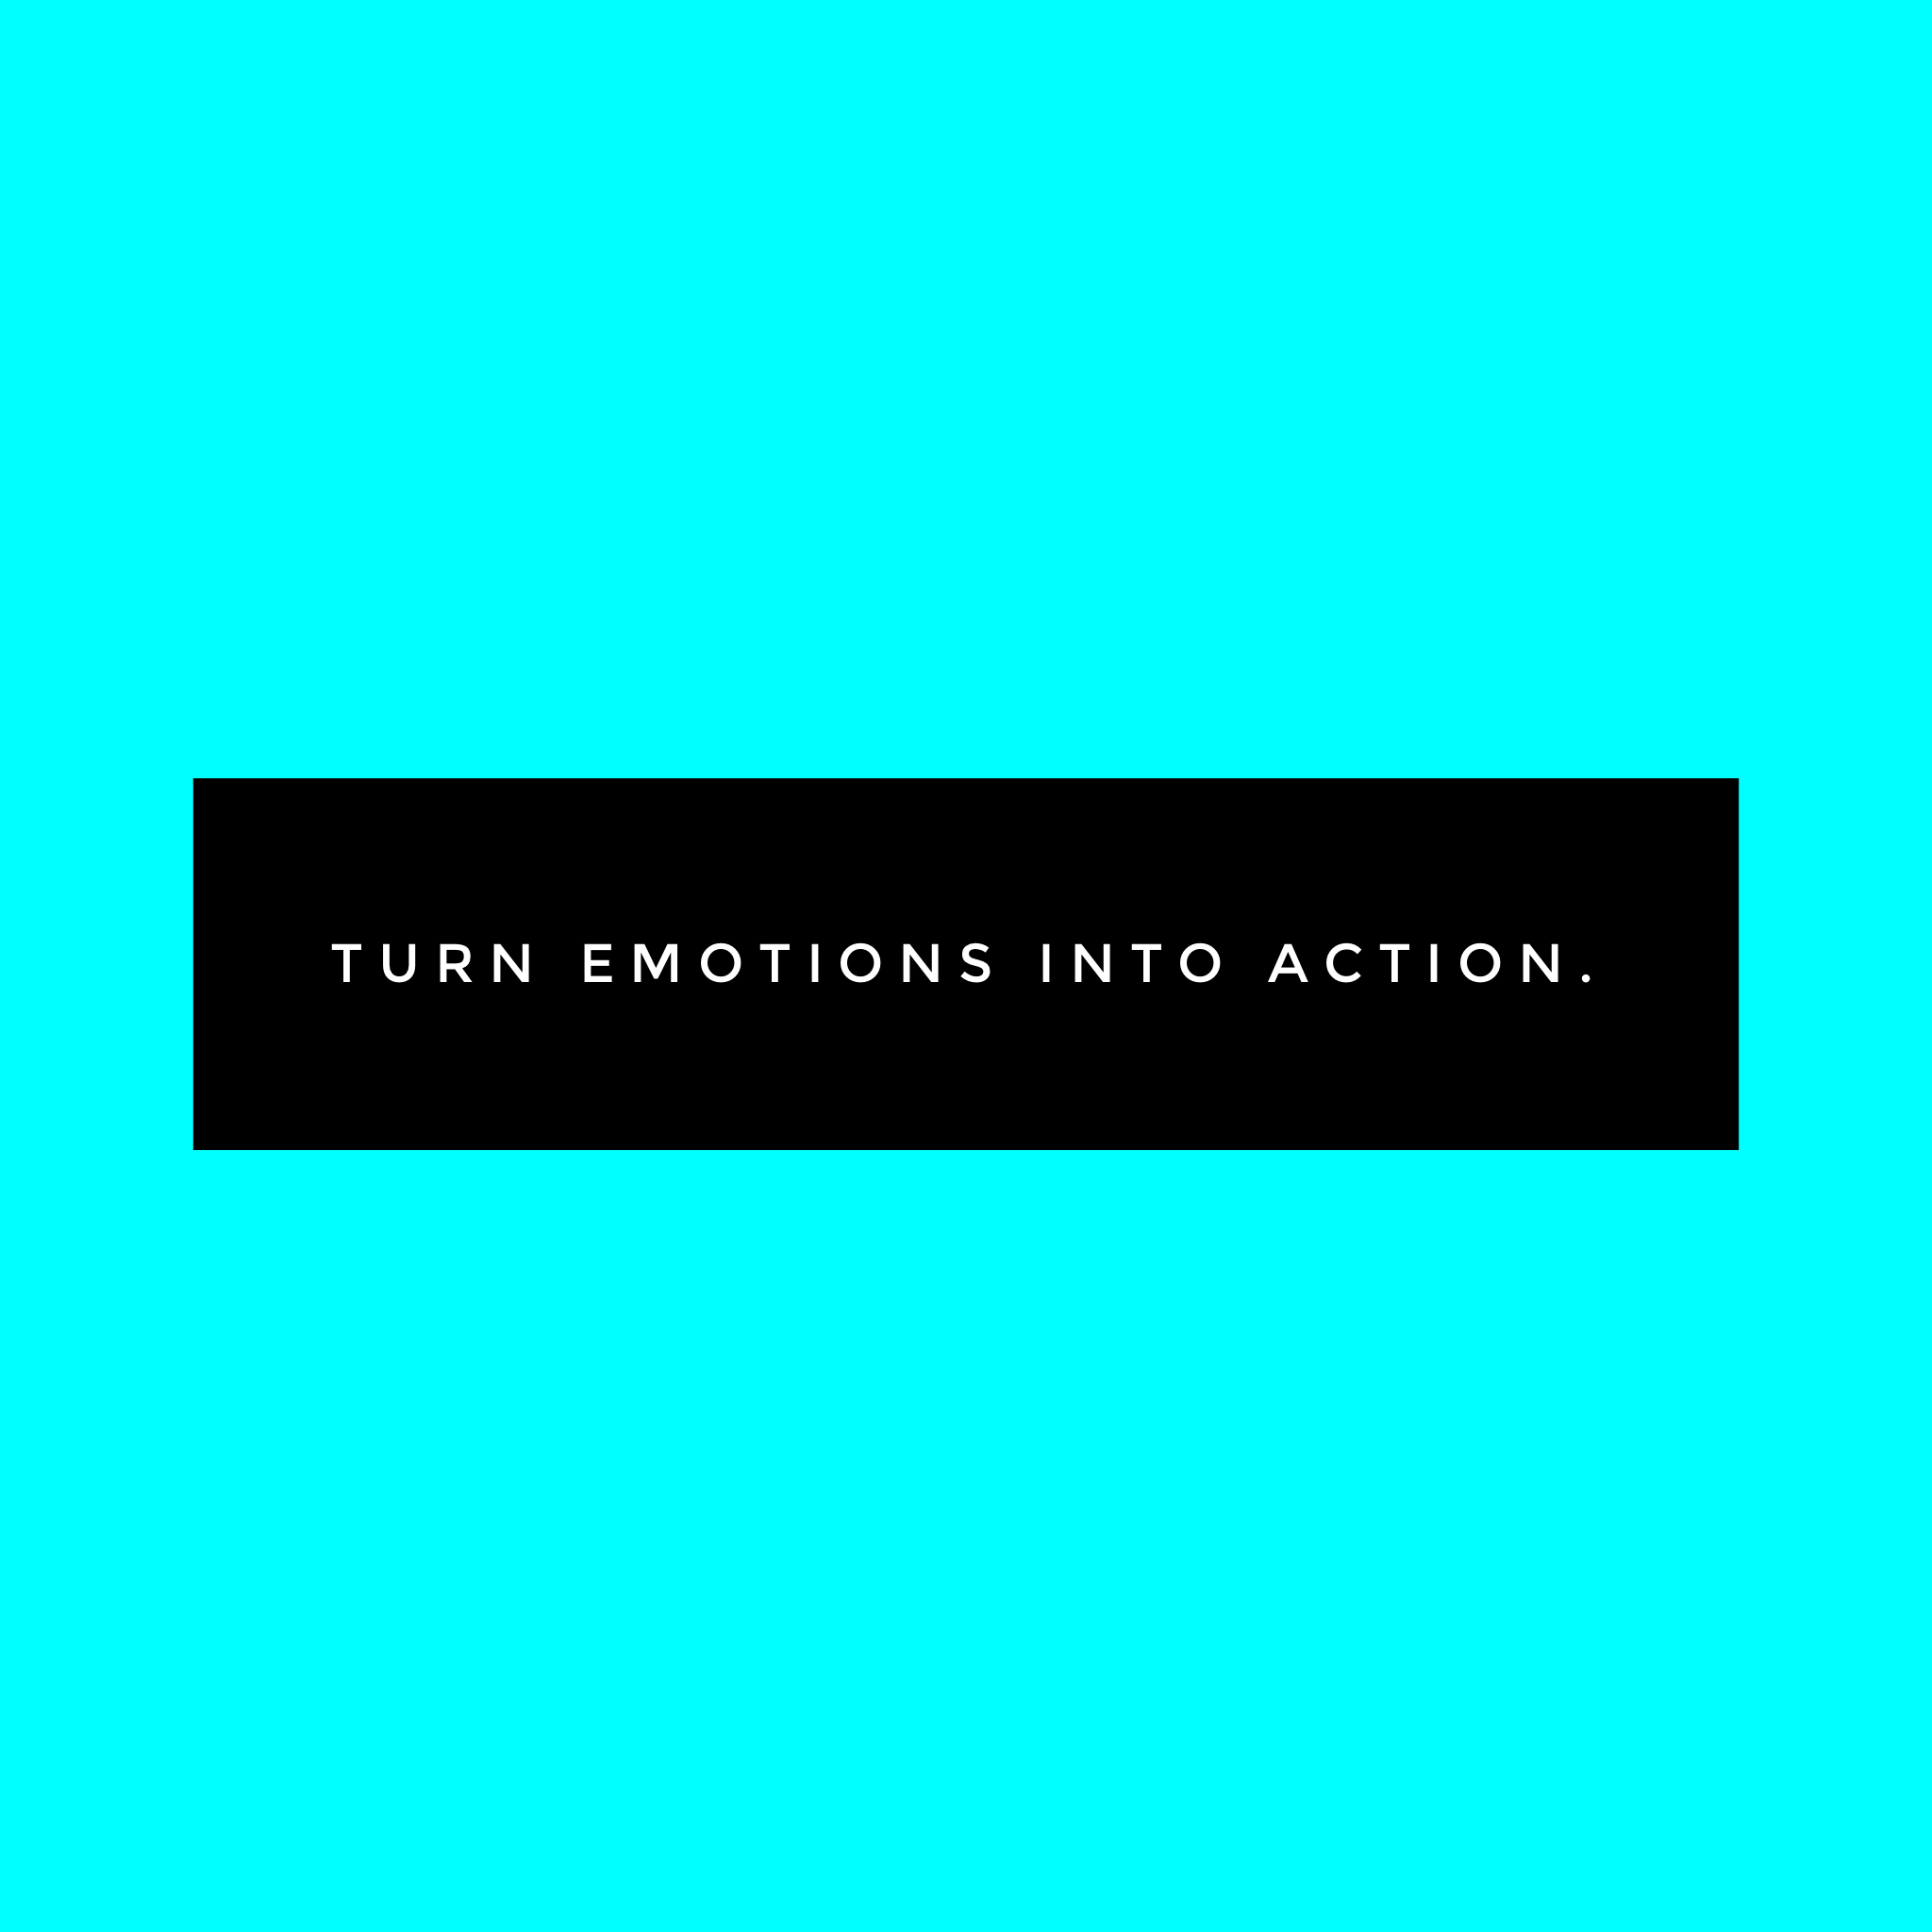 Turn emotions into action